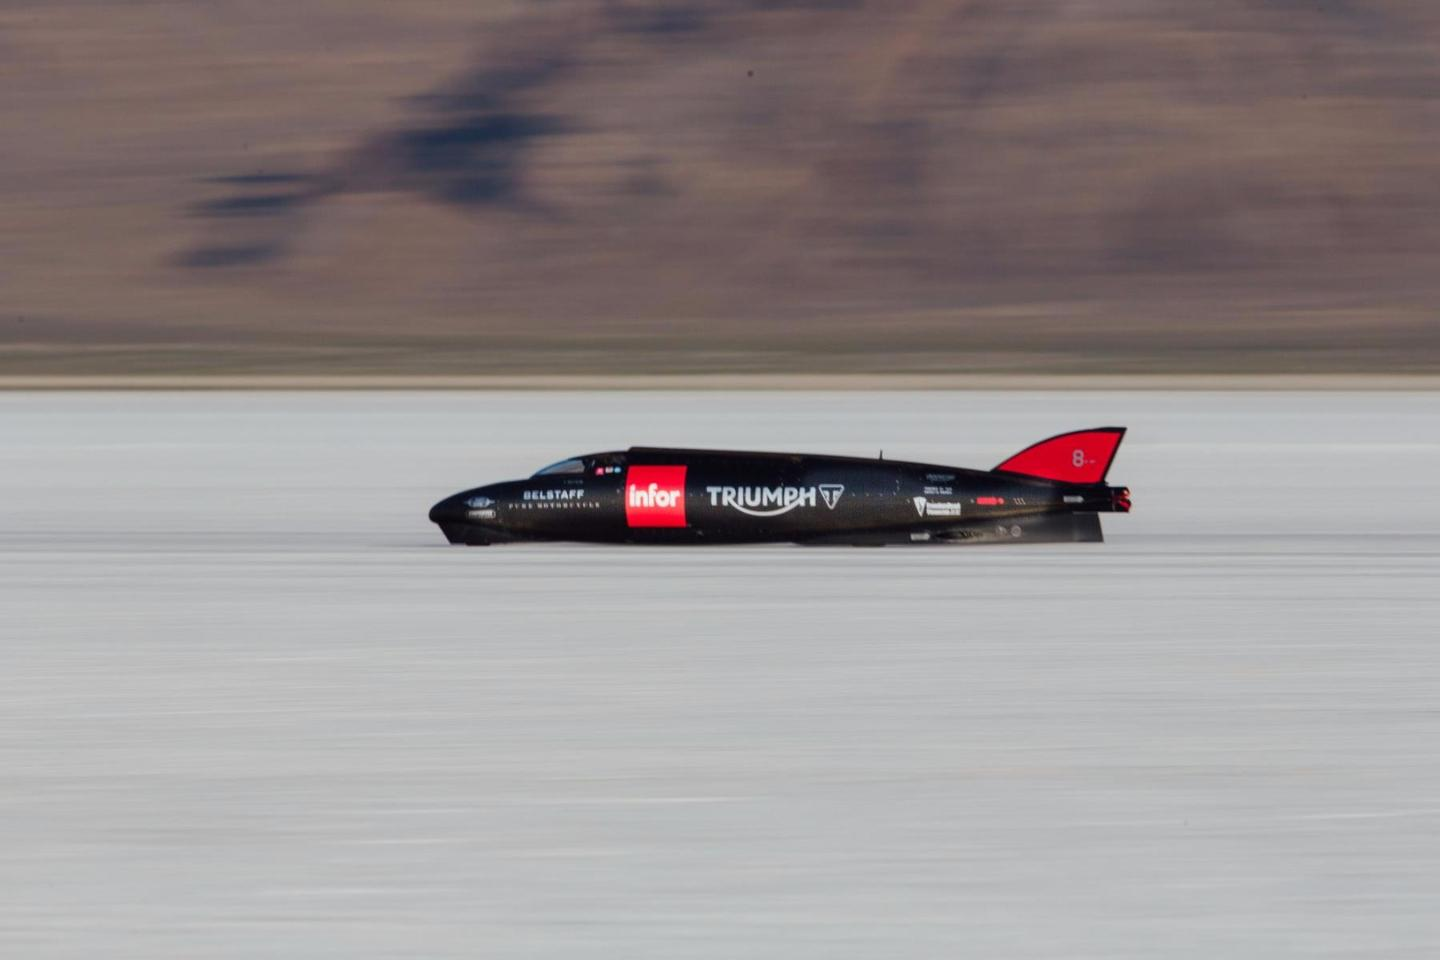 The successful attempt at the Triumph speed record was specifically planned